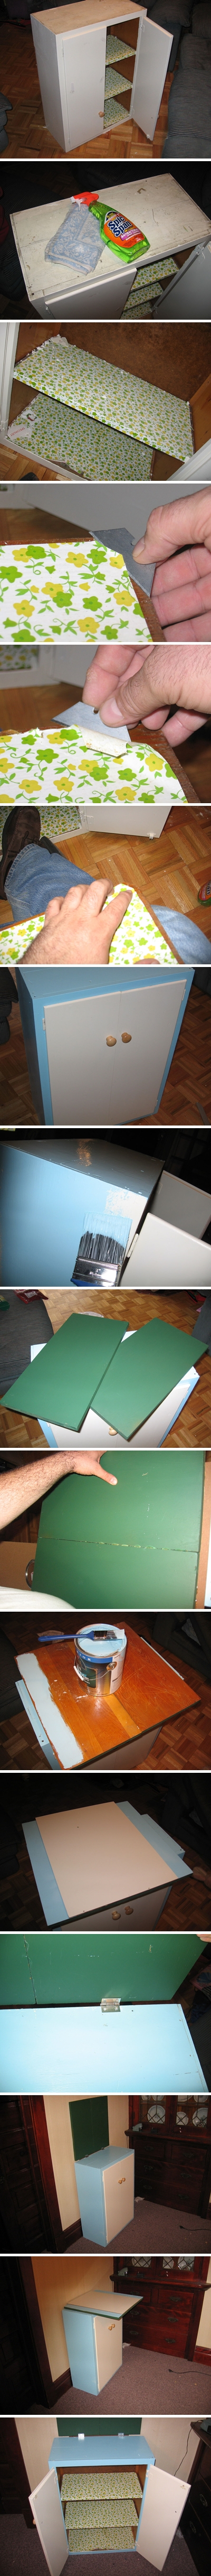 How to recycle an old kitchen cabinets into a child desk step by step DIY tutorial instructions